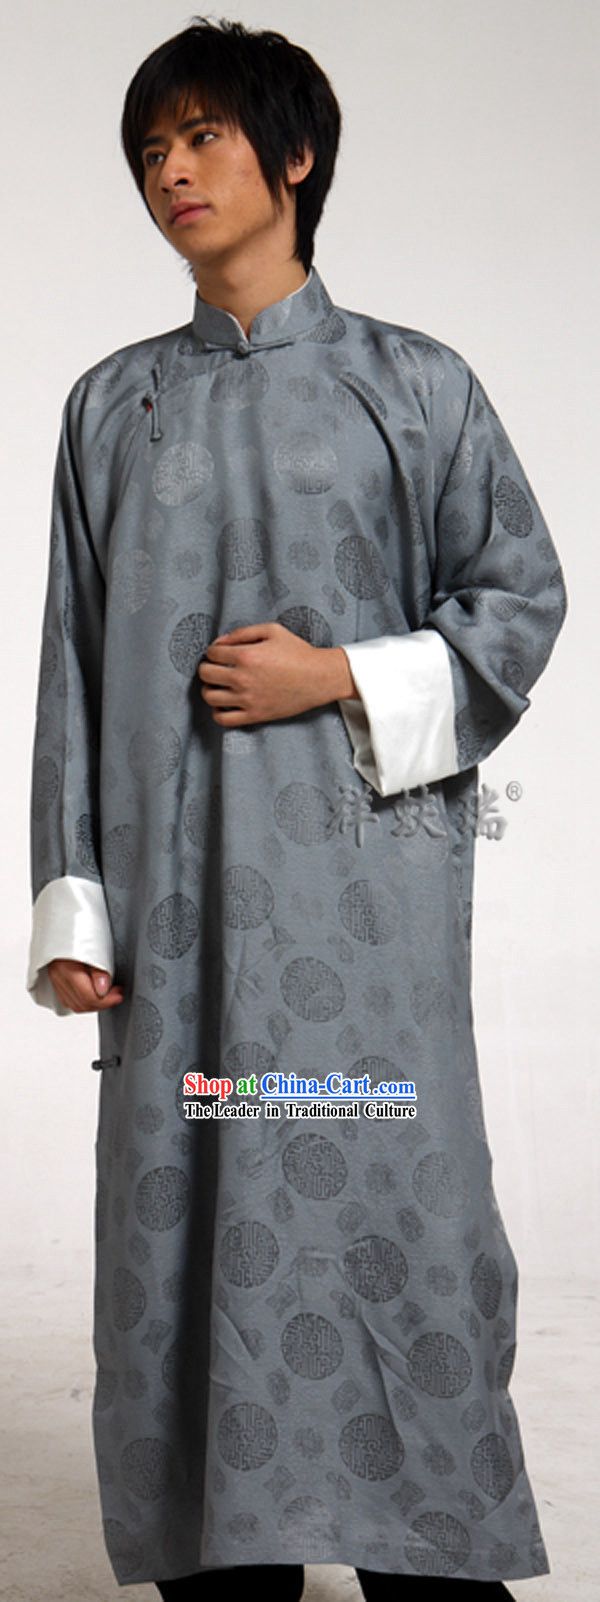 Traditional Chinese Rui Fu Xiang Minguo Long Silk Robe Garment for Men